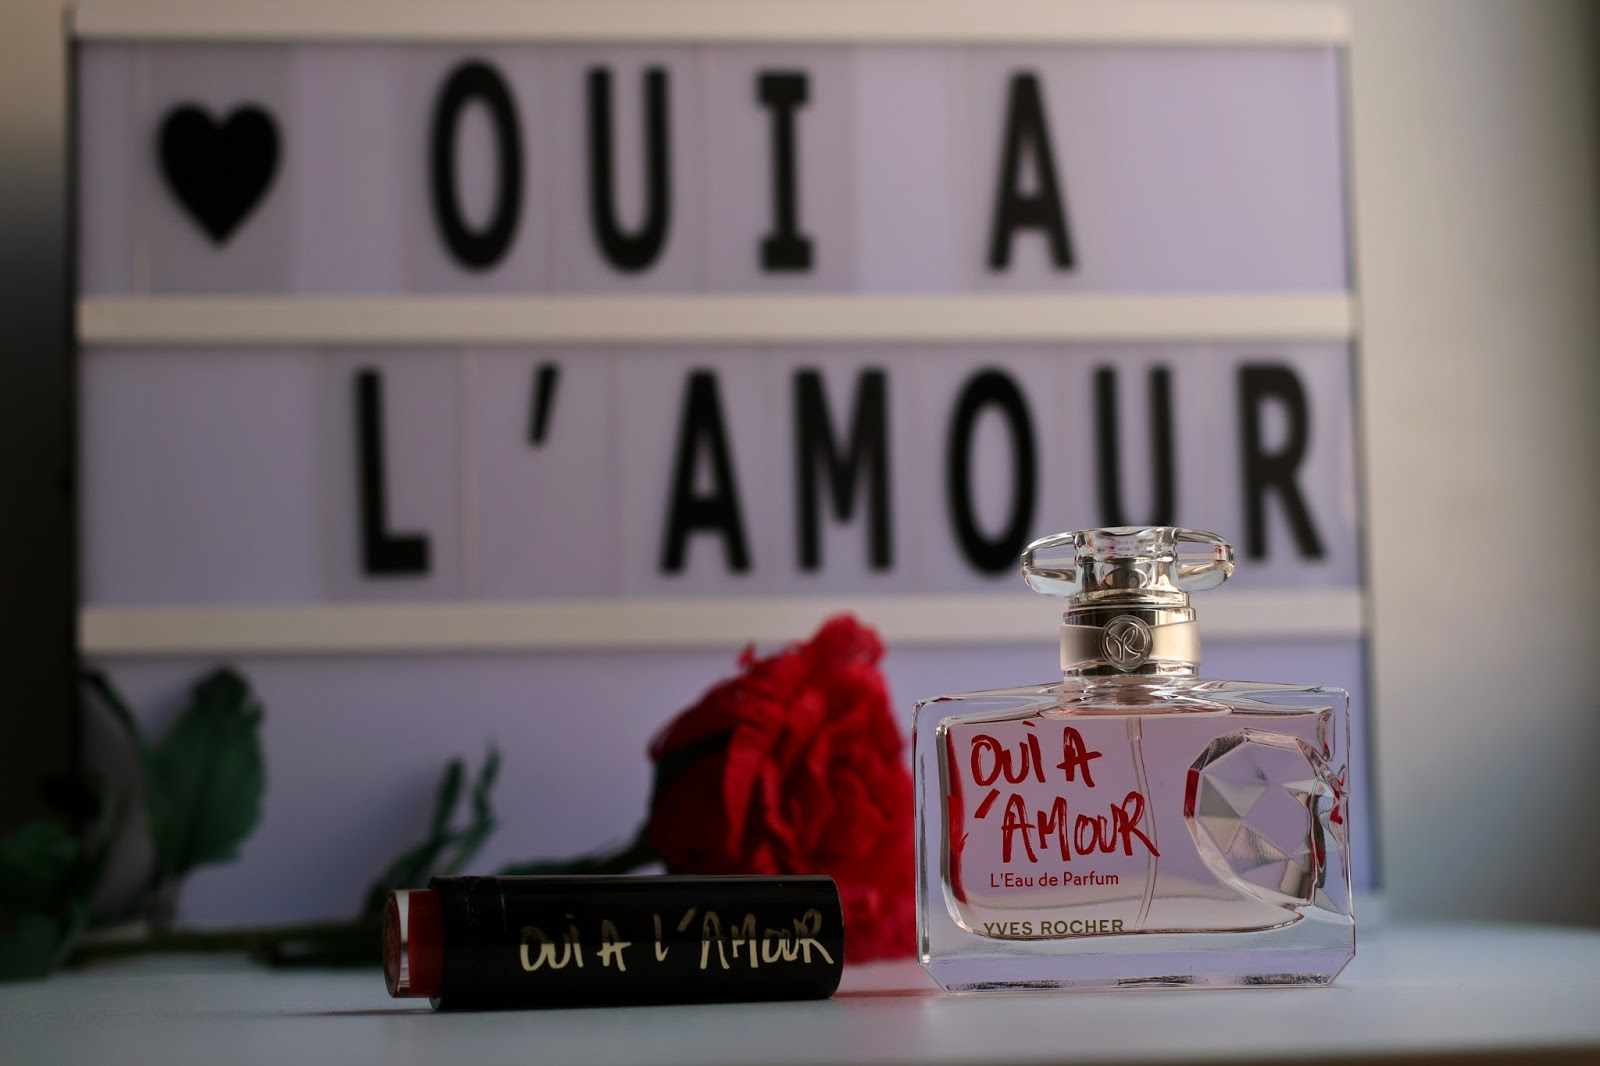 perfume oui a l'amour yves rocher